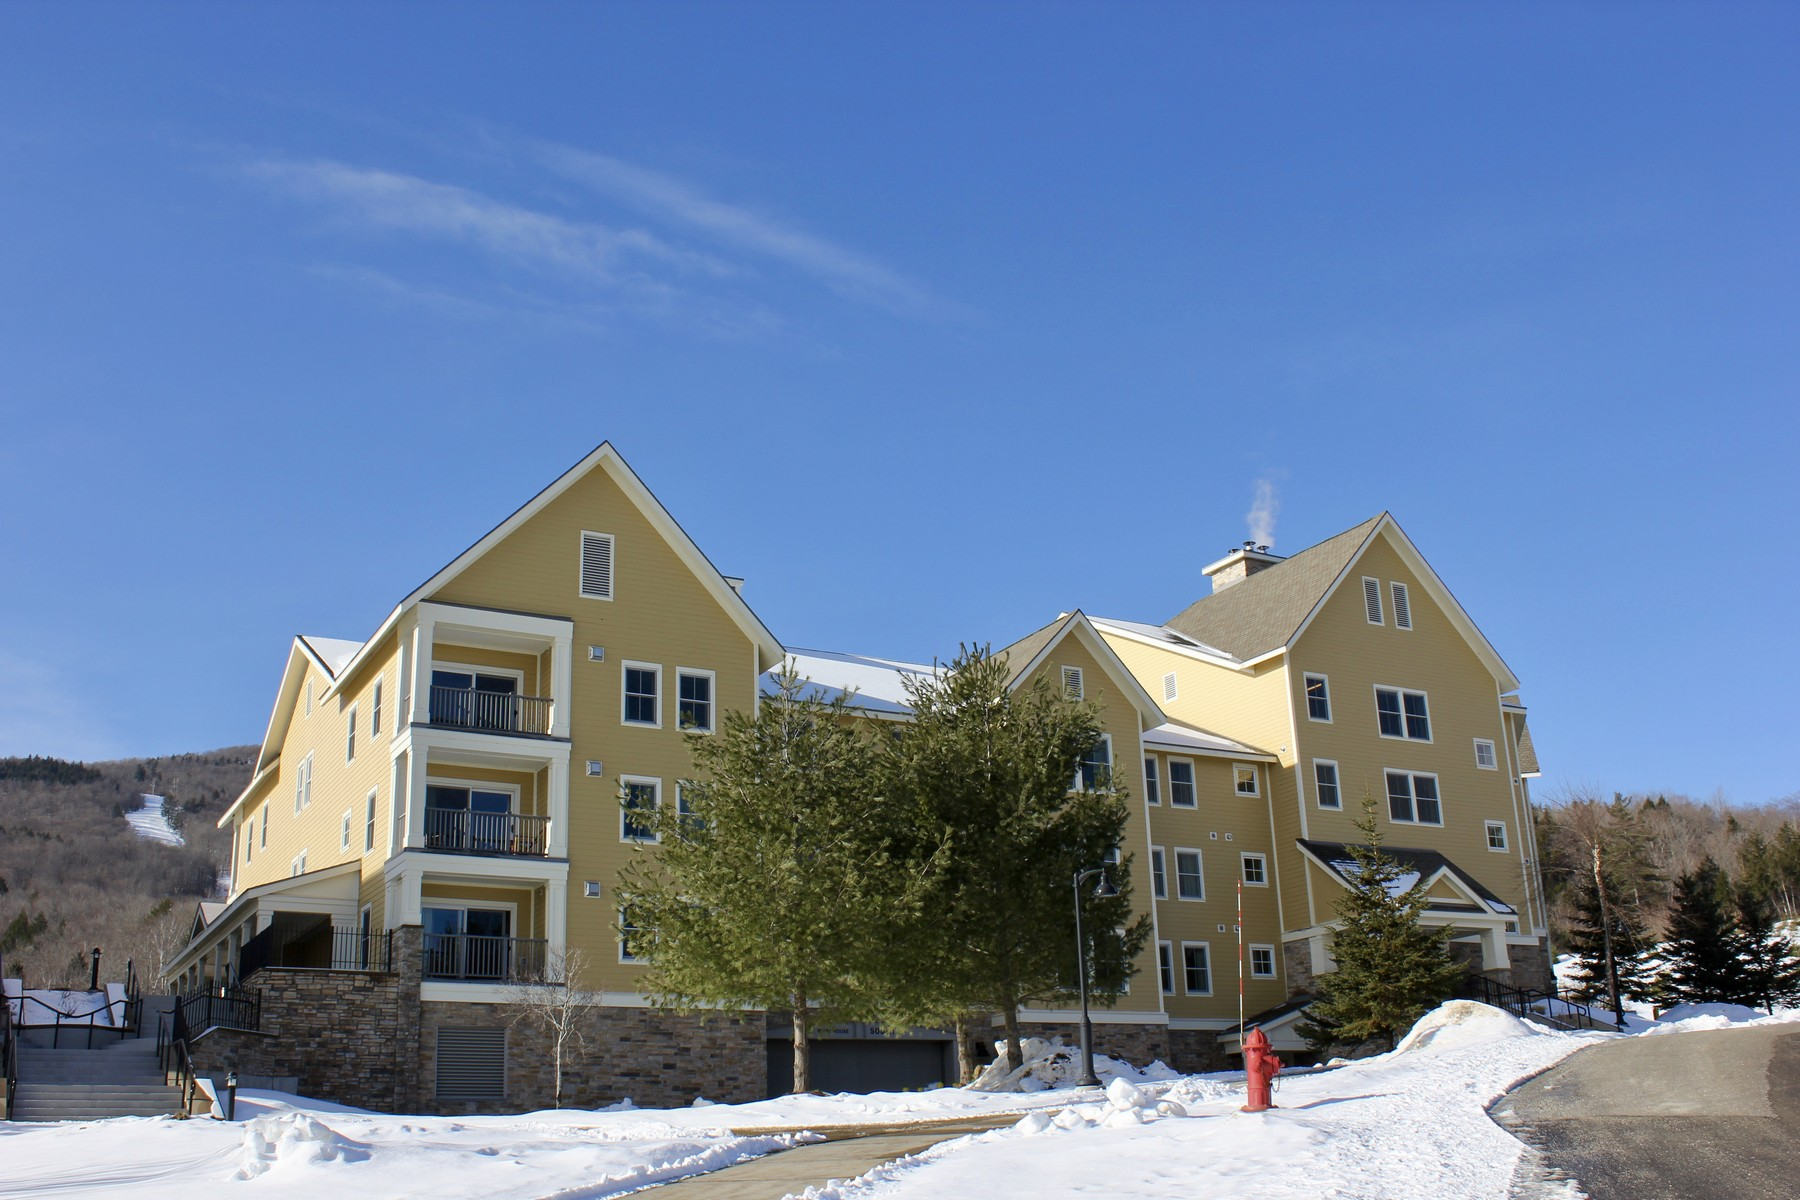 Condominium for Sale at Oversized - Two Bedroom - Slope-Side Condo 193 Jackson Gore Rd 735 Ludlow, Vermont 05149 United States